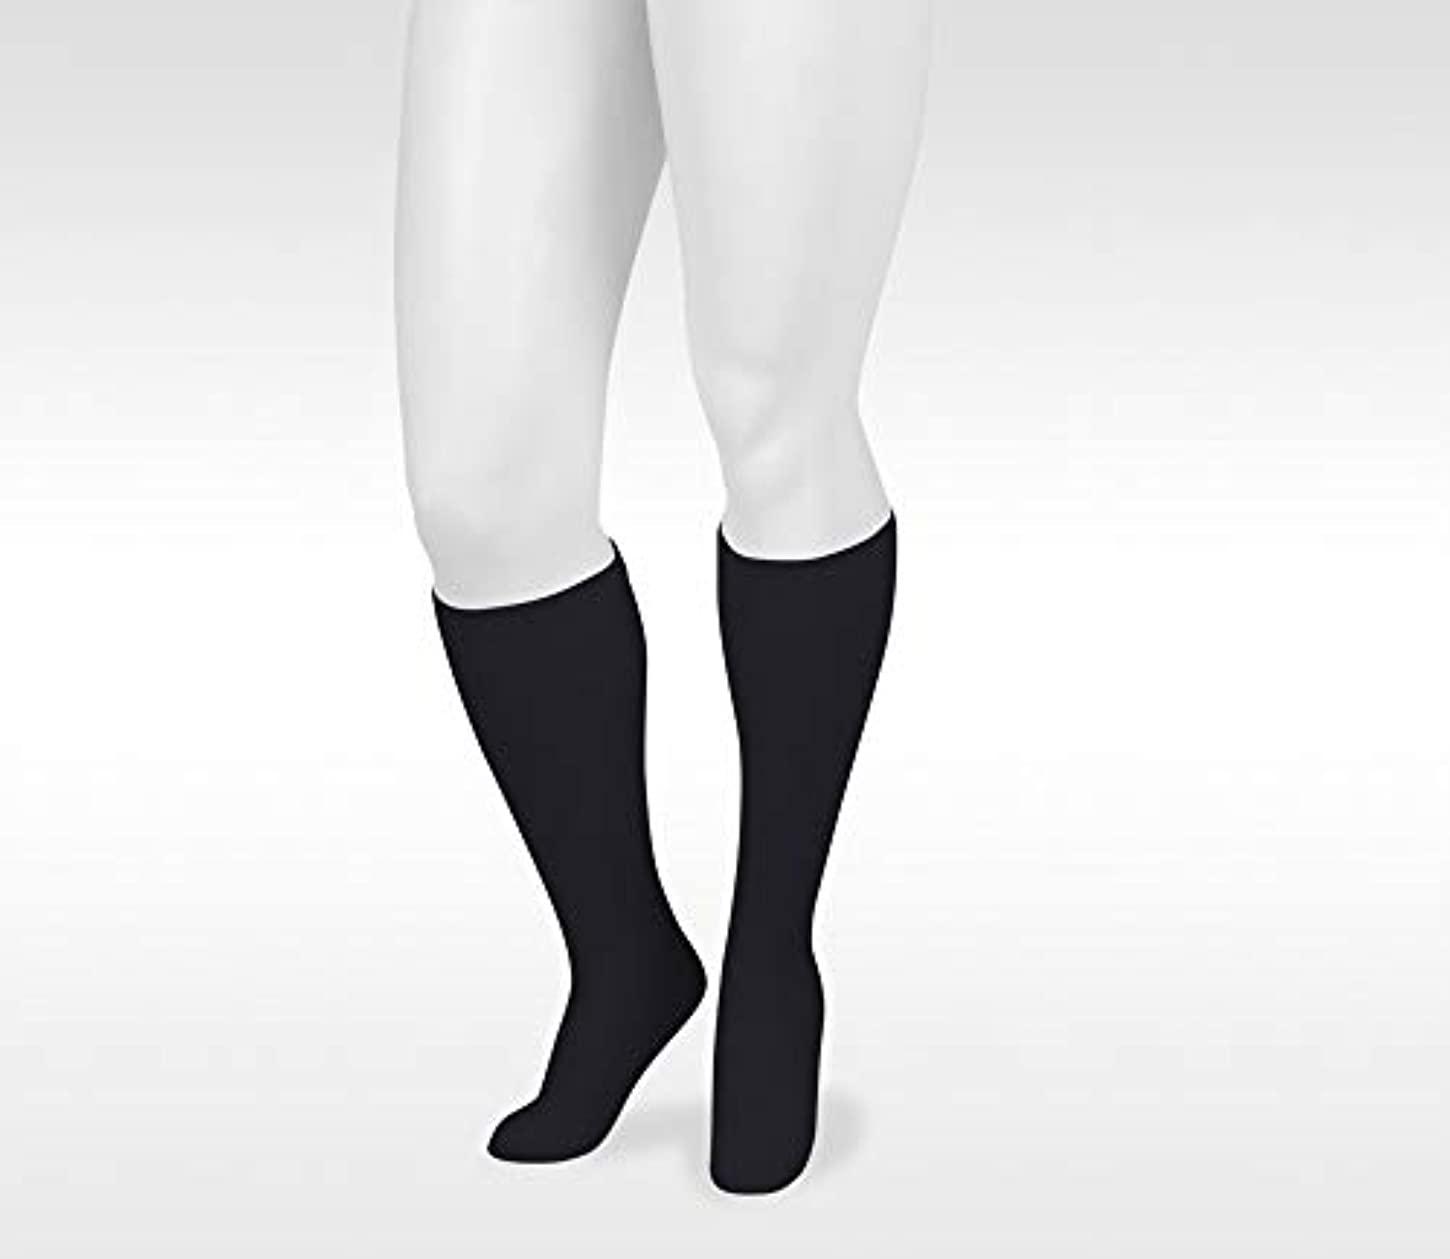 ゴージャス虫を数える自伝Juzo 4701AD10 II Basic Casual 20-30 mmHg Closed Toe Knee High - Black by Juzo